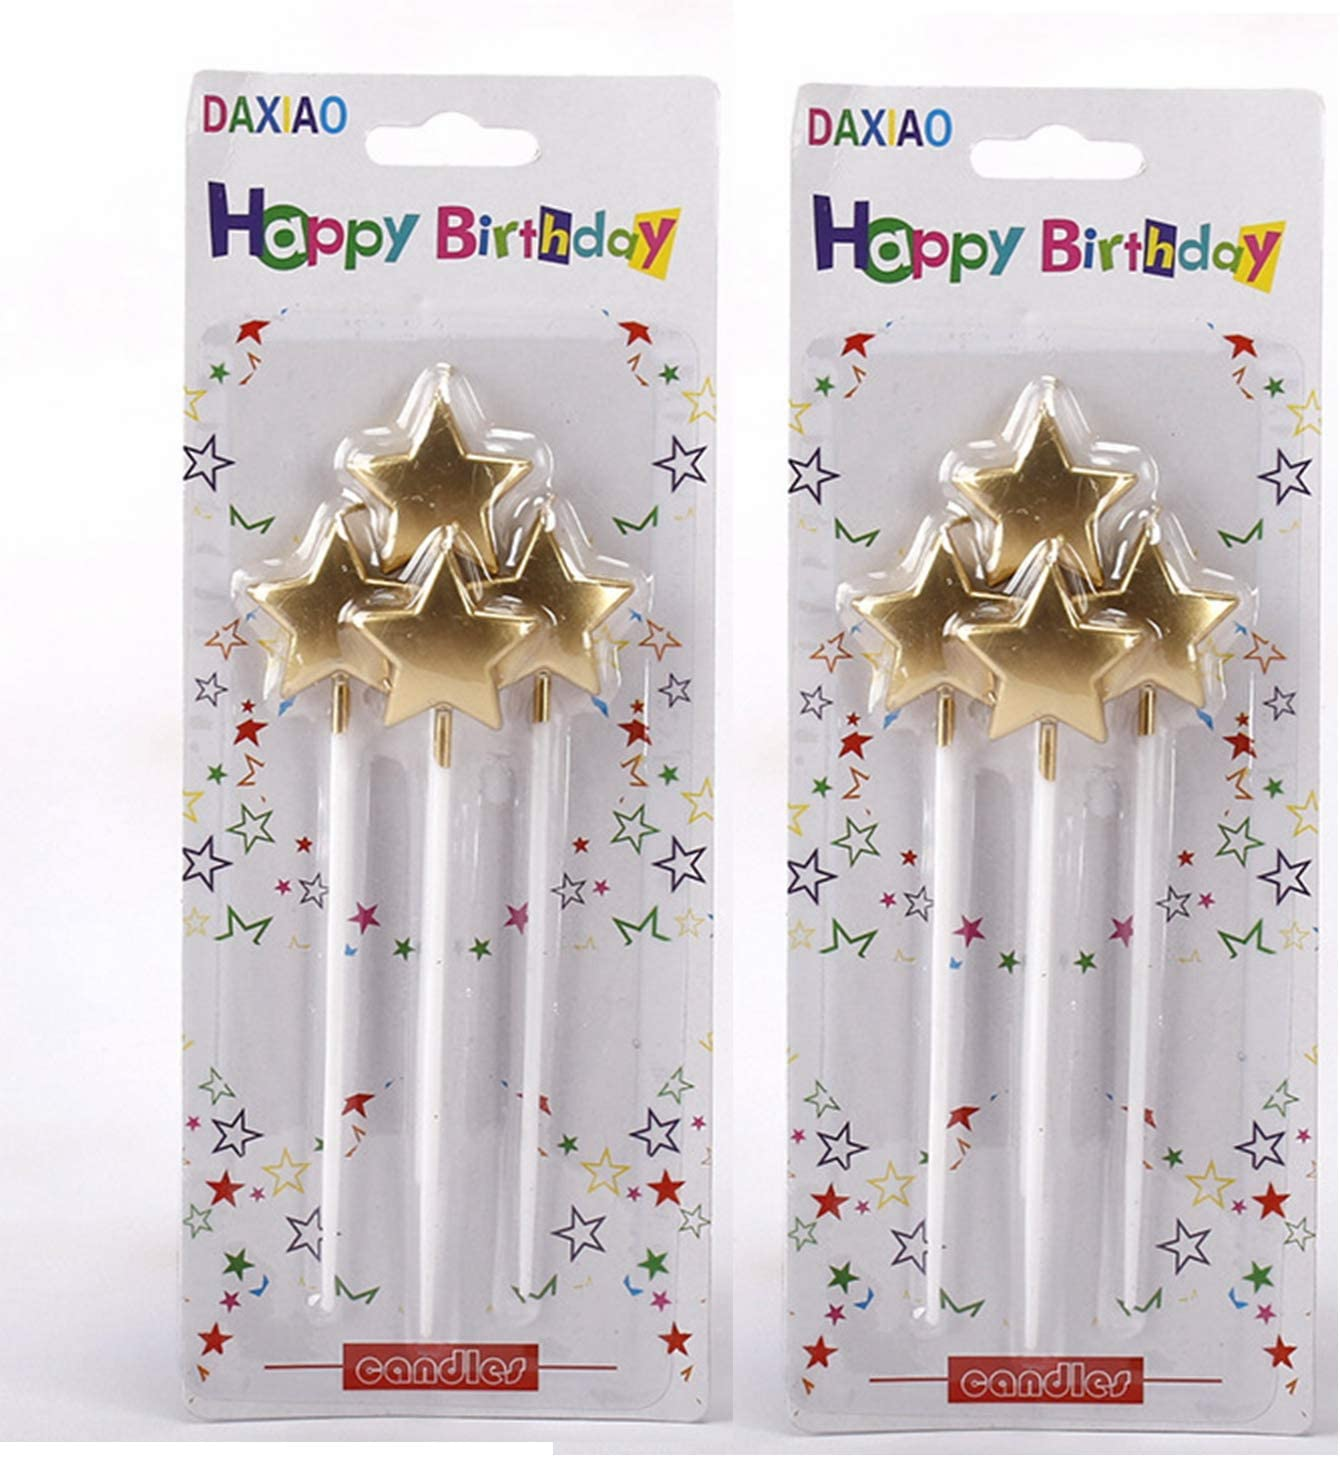 Twisty Birthday Candles 24/40 Set Metallic Colorful Curly Coil Candles with Holders Creative Cake Cupcake Candles Fun Long Thin Wedding Kids Party Supplies Anniversary (Star candles8)